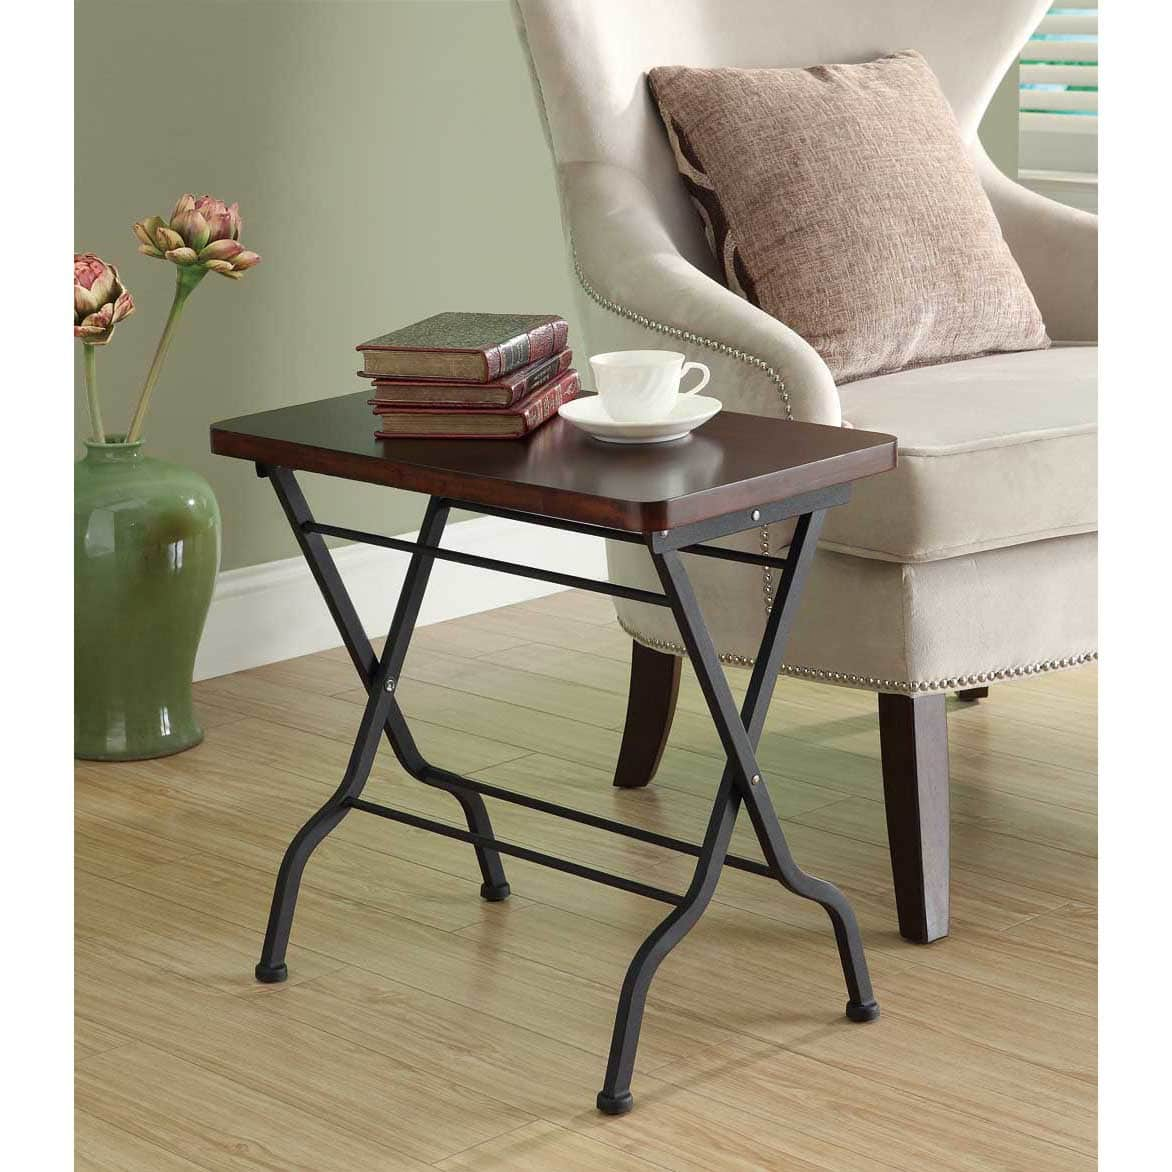 cherry charcoal black metal folding accent table free shipping today white round side with drawer rocking chair coastal inspired lighting small baroque bedside glass end beer